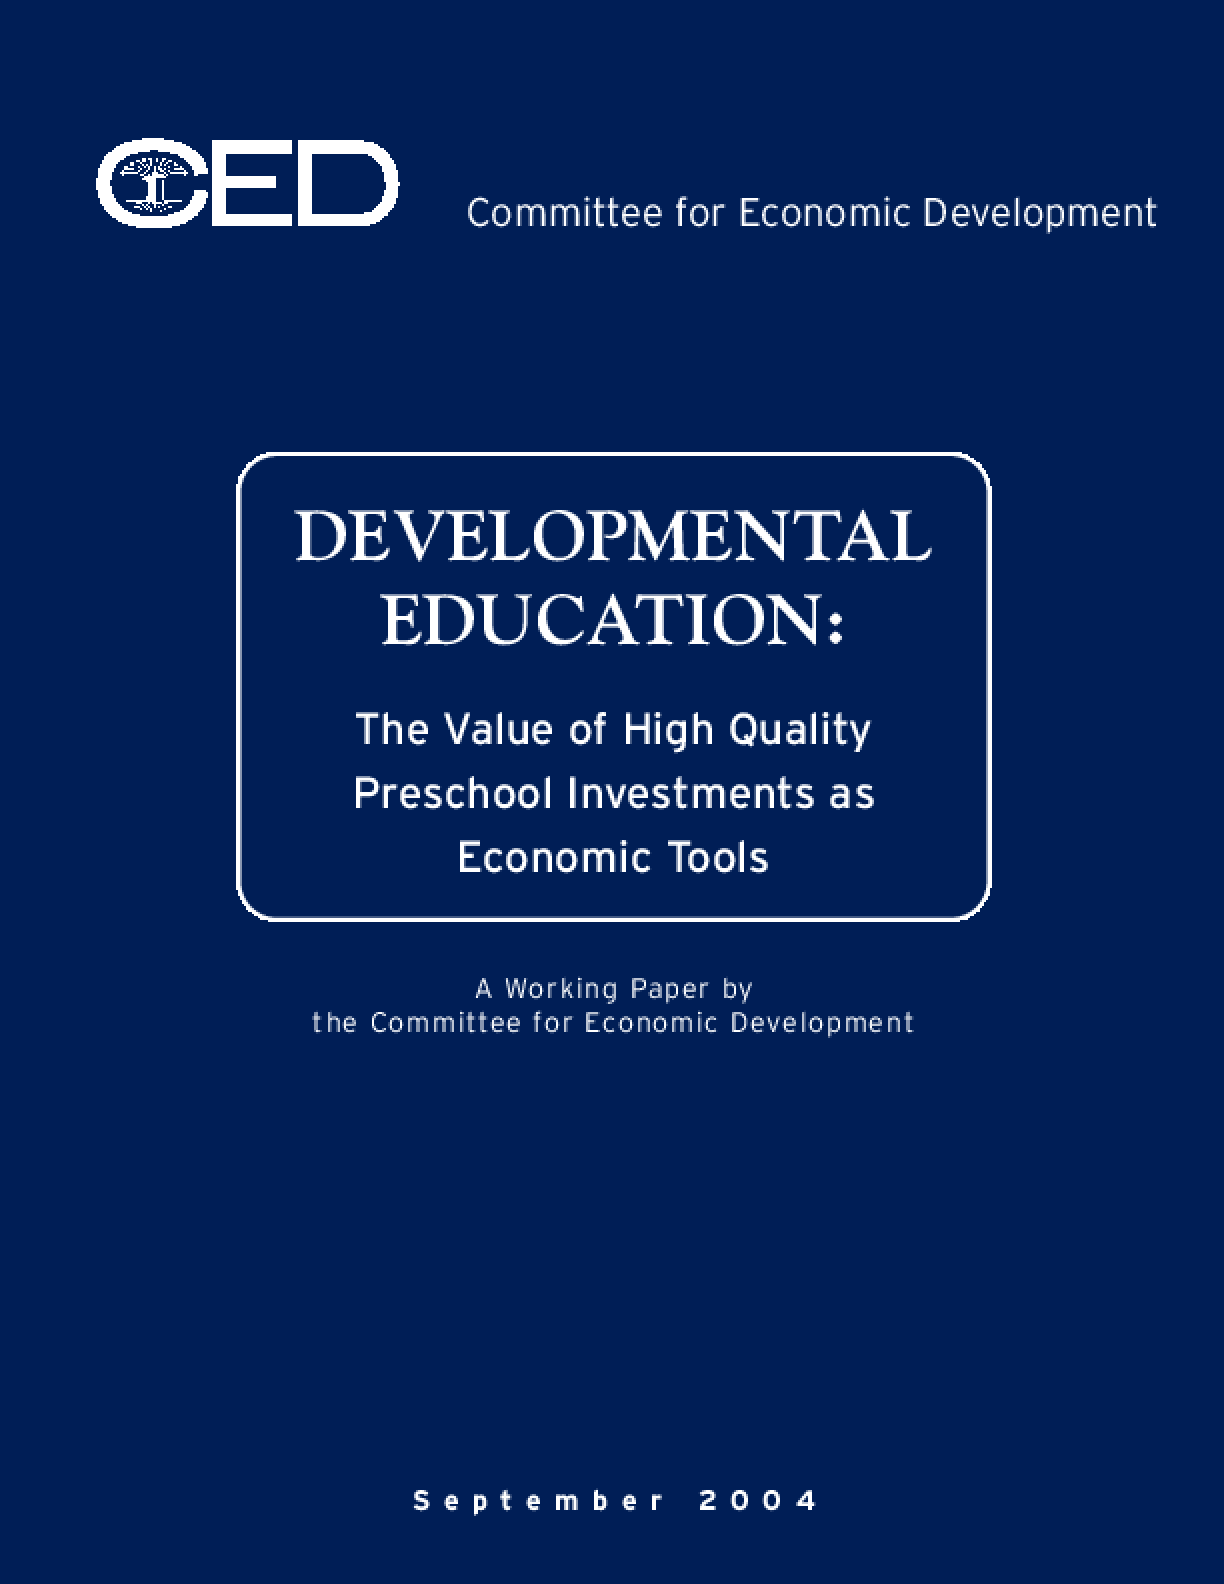 Developmental Education: The Value of High Quality Preschool Investments as Economic Tools